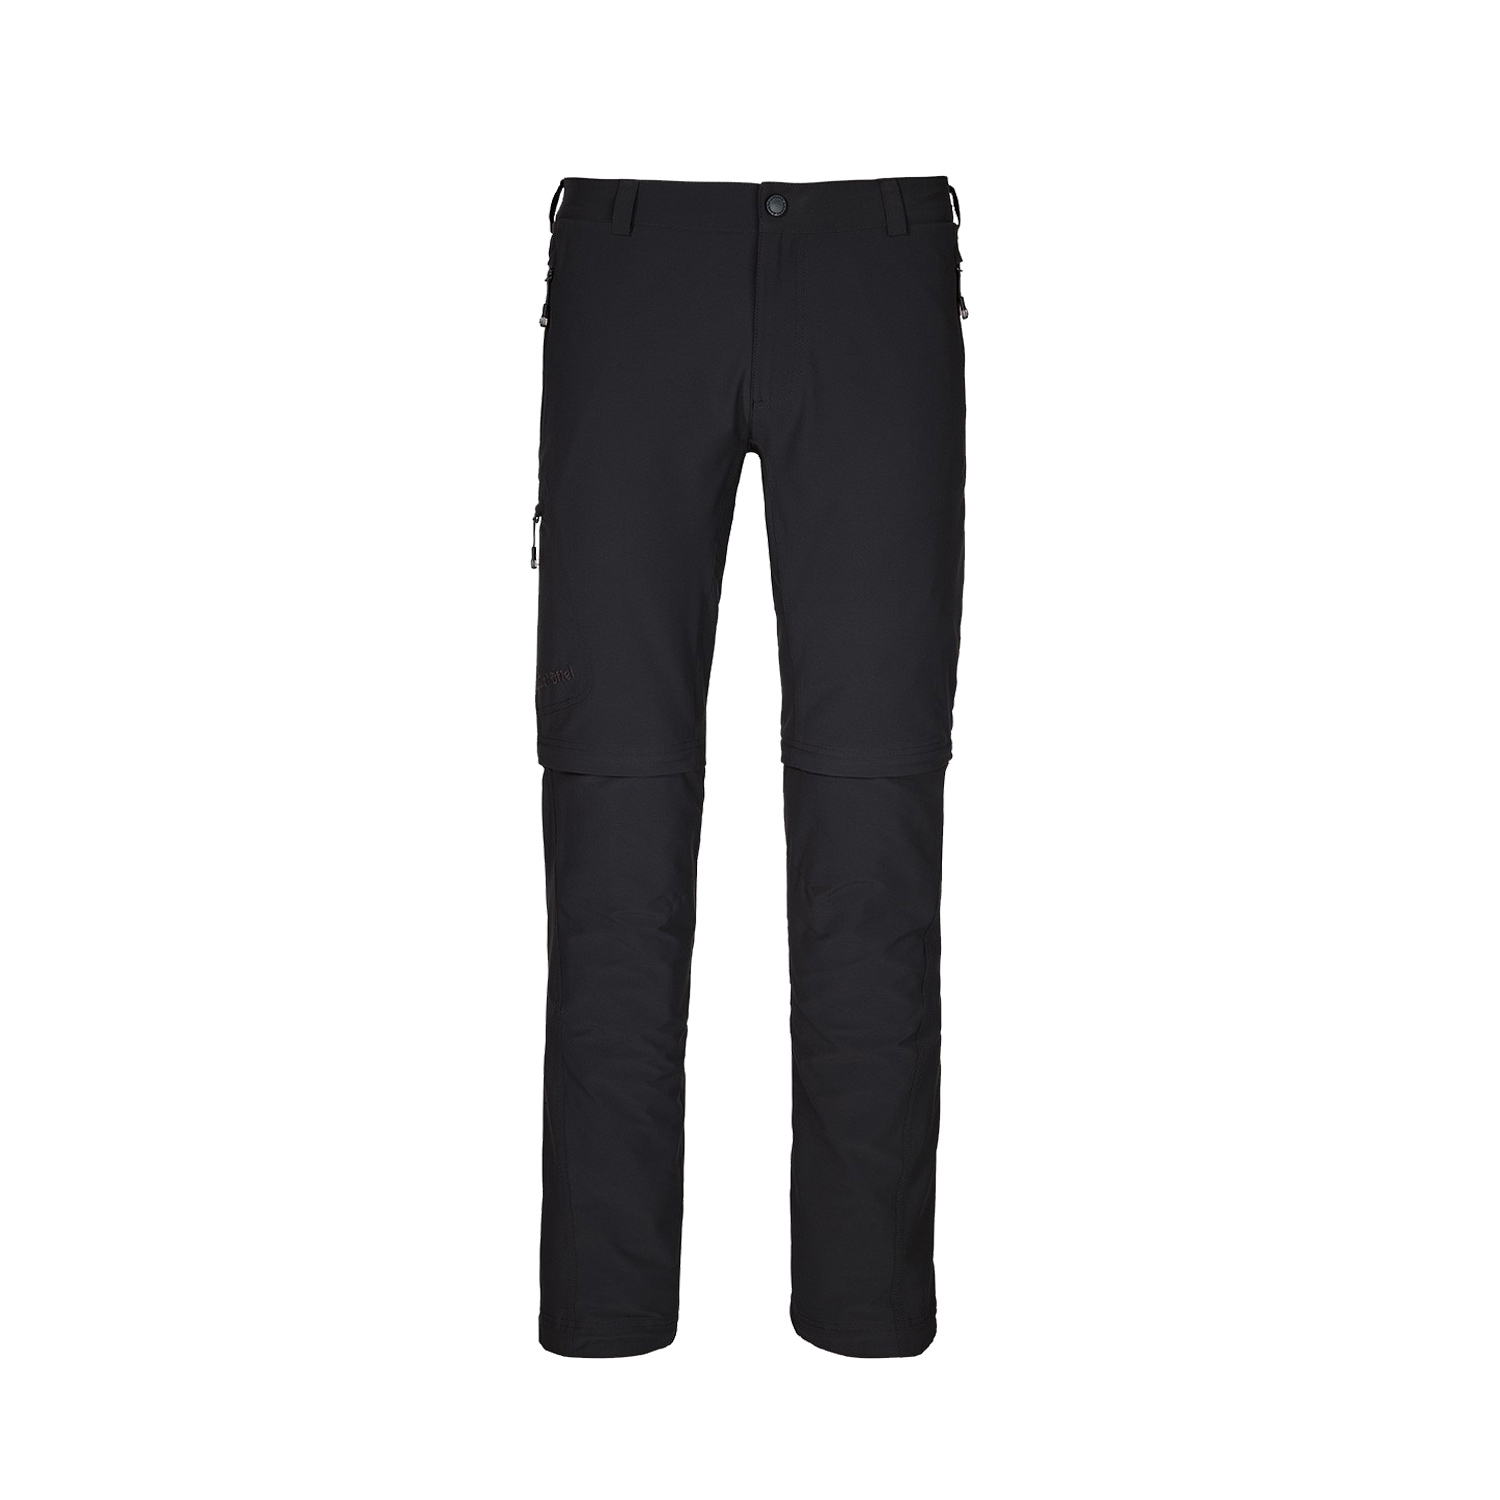 Schöffel Pants Koper Zip Off Herren Outdoorhose